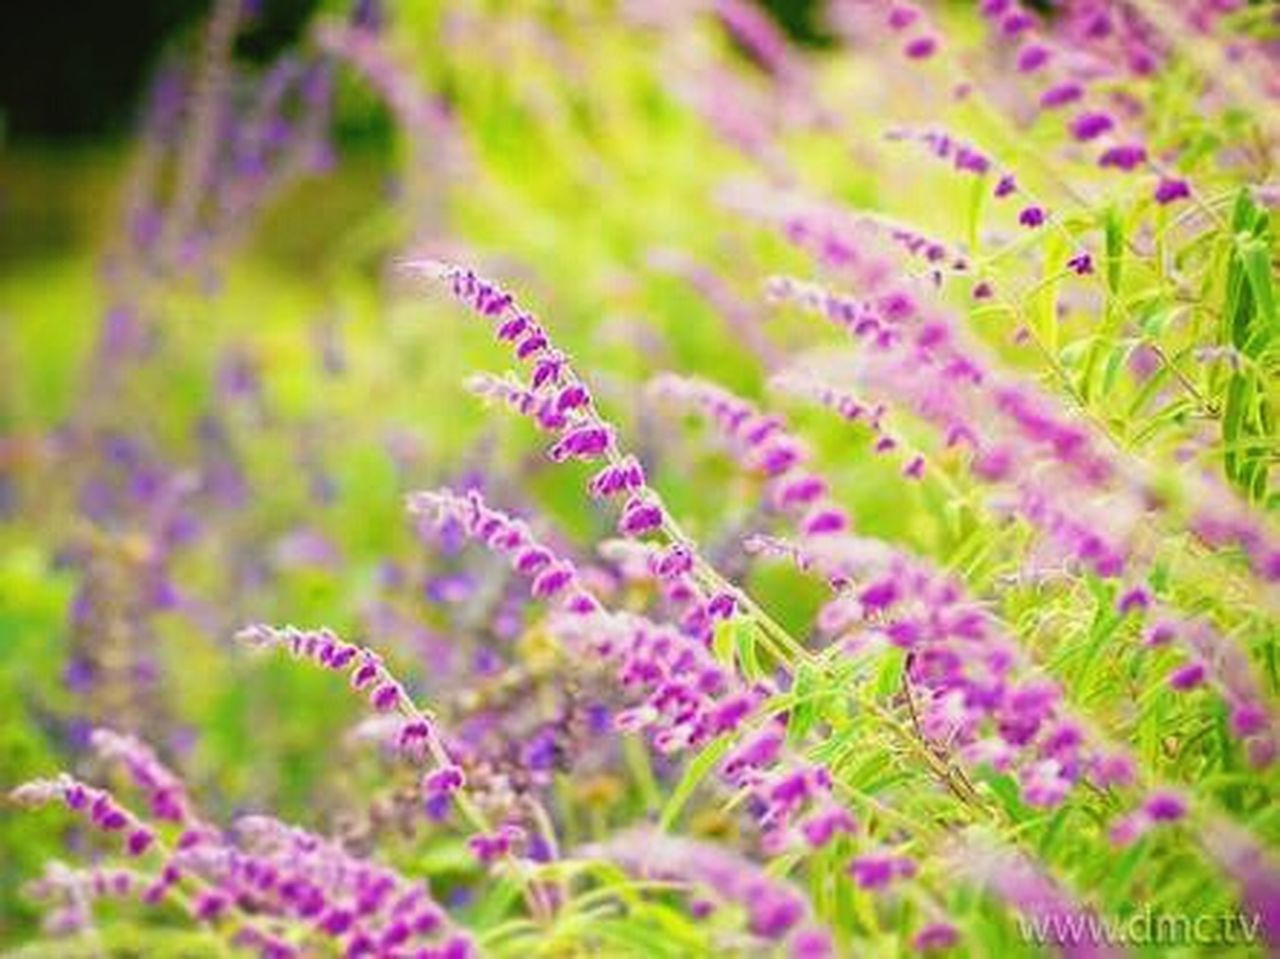 I Like Purple Plant Herbal Medicine Flower Grass Nature Lavender Beauty In Nature Growth Wildflower Flower Head Outdoors Close-up No People Fragility Inflorescence Day Freshness Crocus